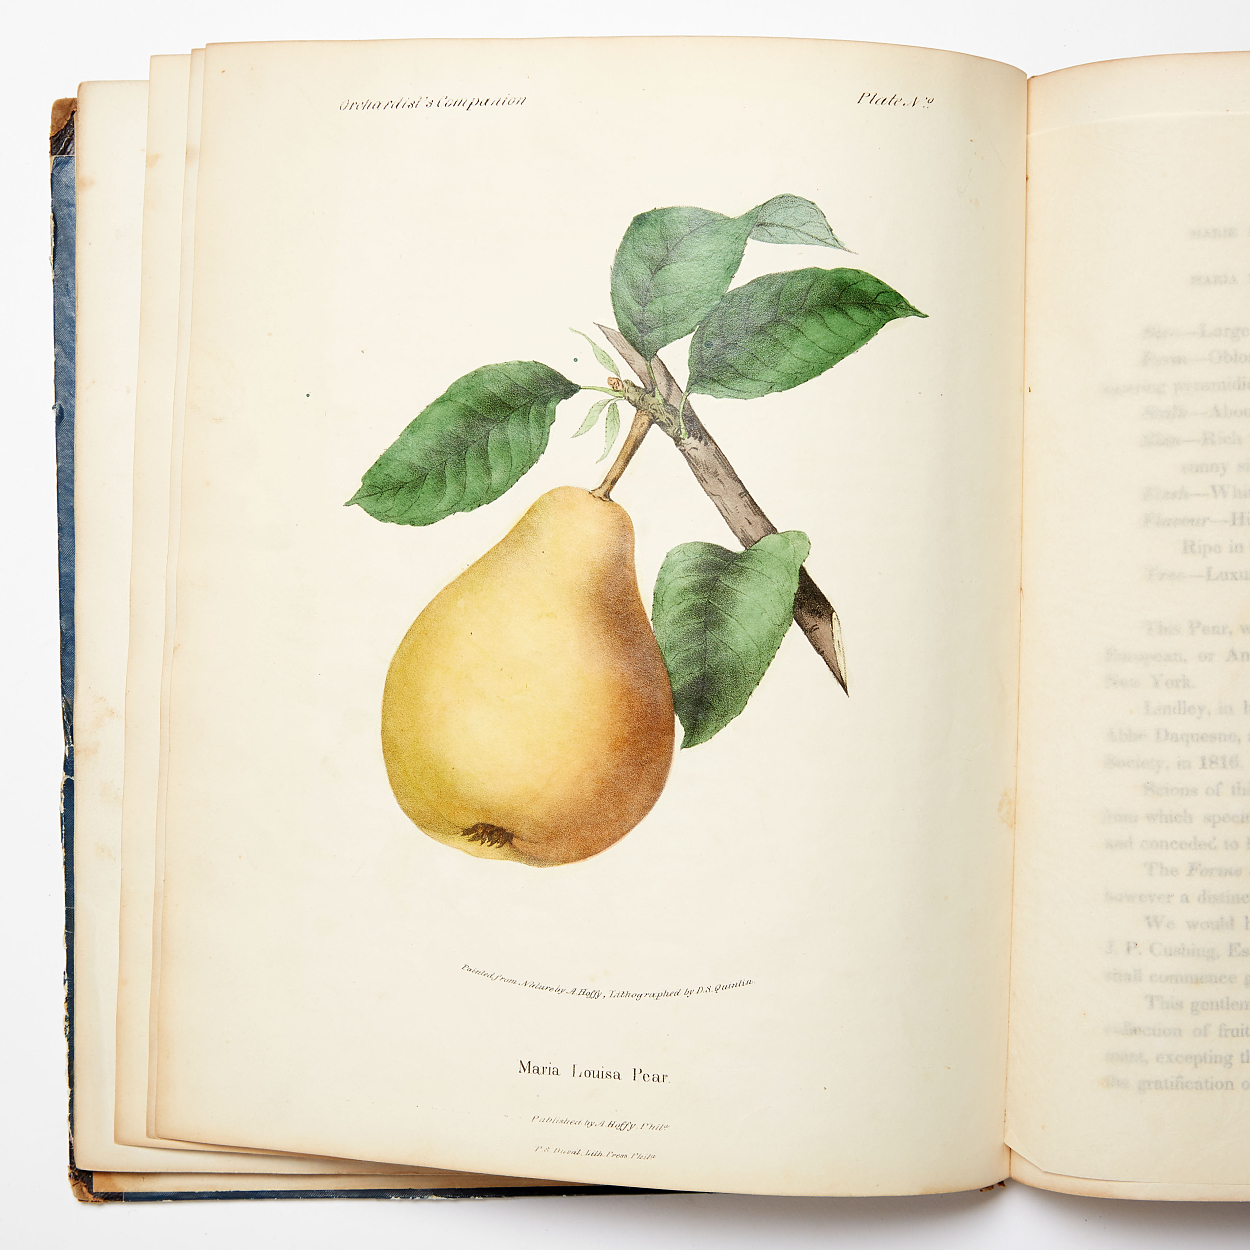 12 hand-coloured plates Orchardist's Companion